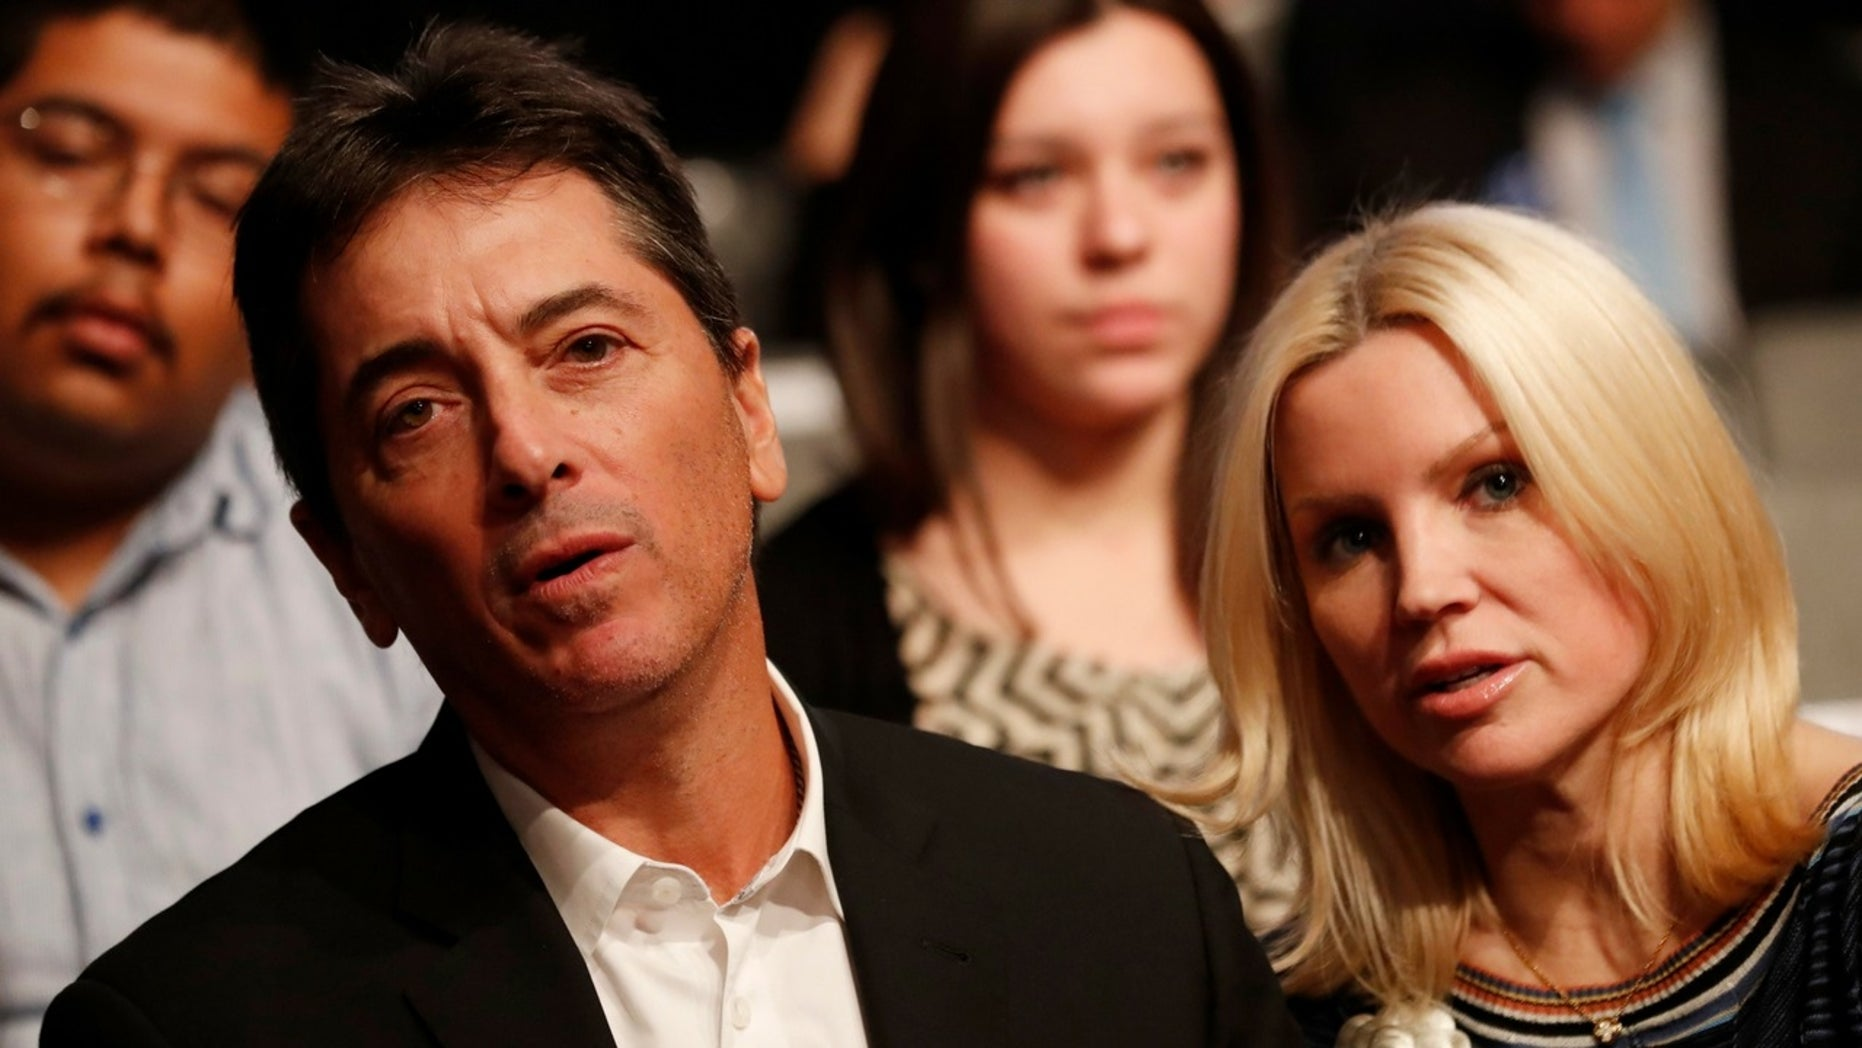 Scott Baio and his wife Renee said they finished training with the Los Angeles Police Department and are allowed to help victims of disasters.